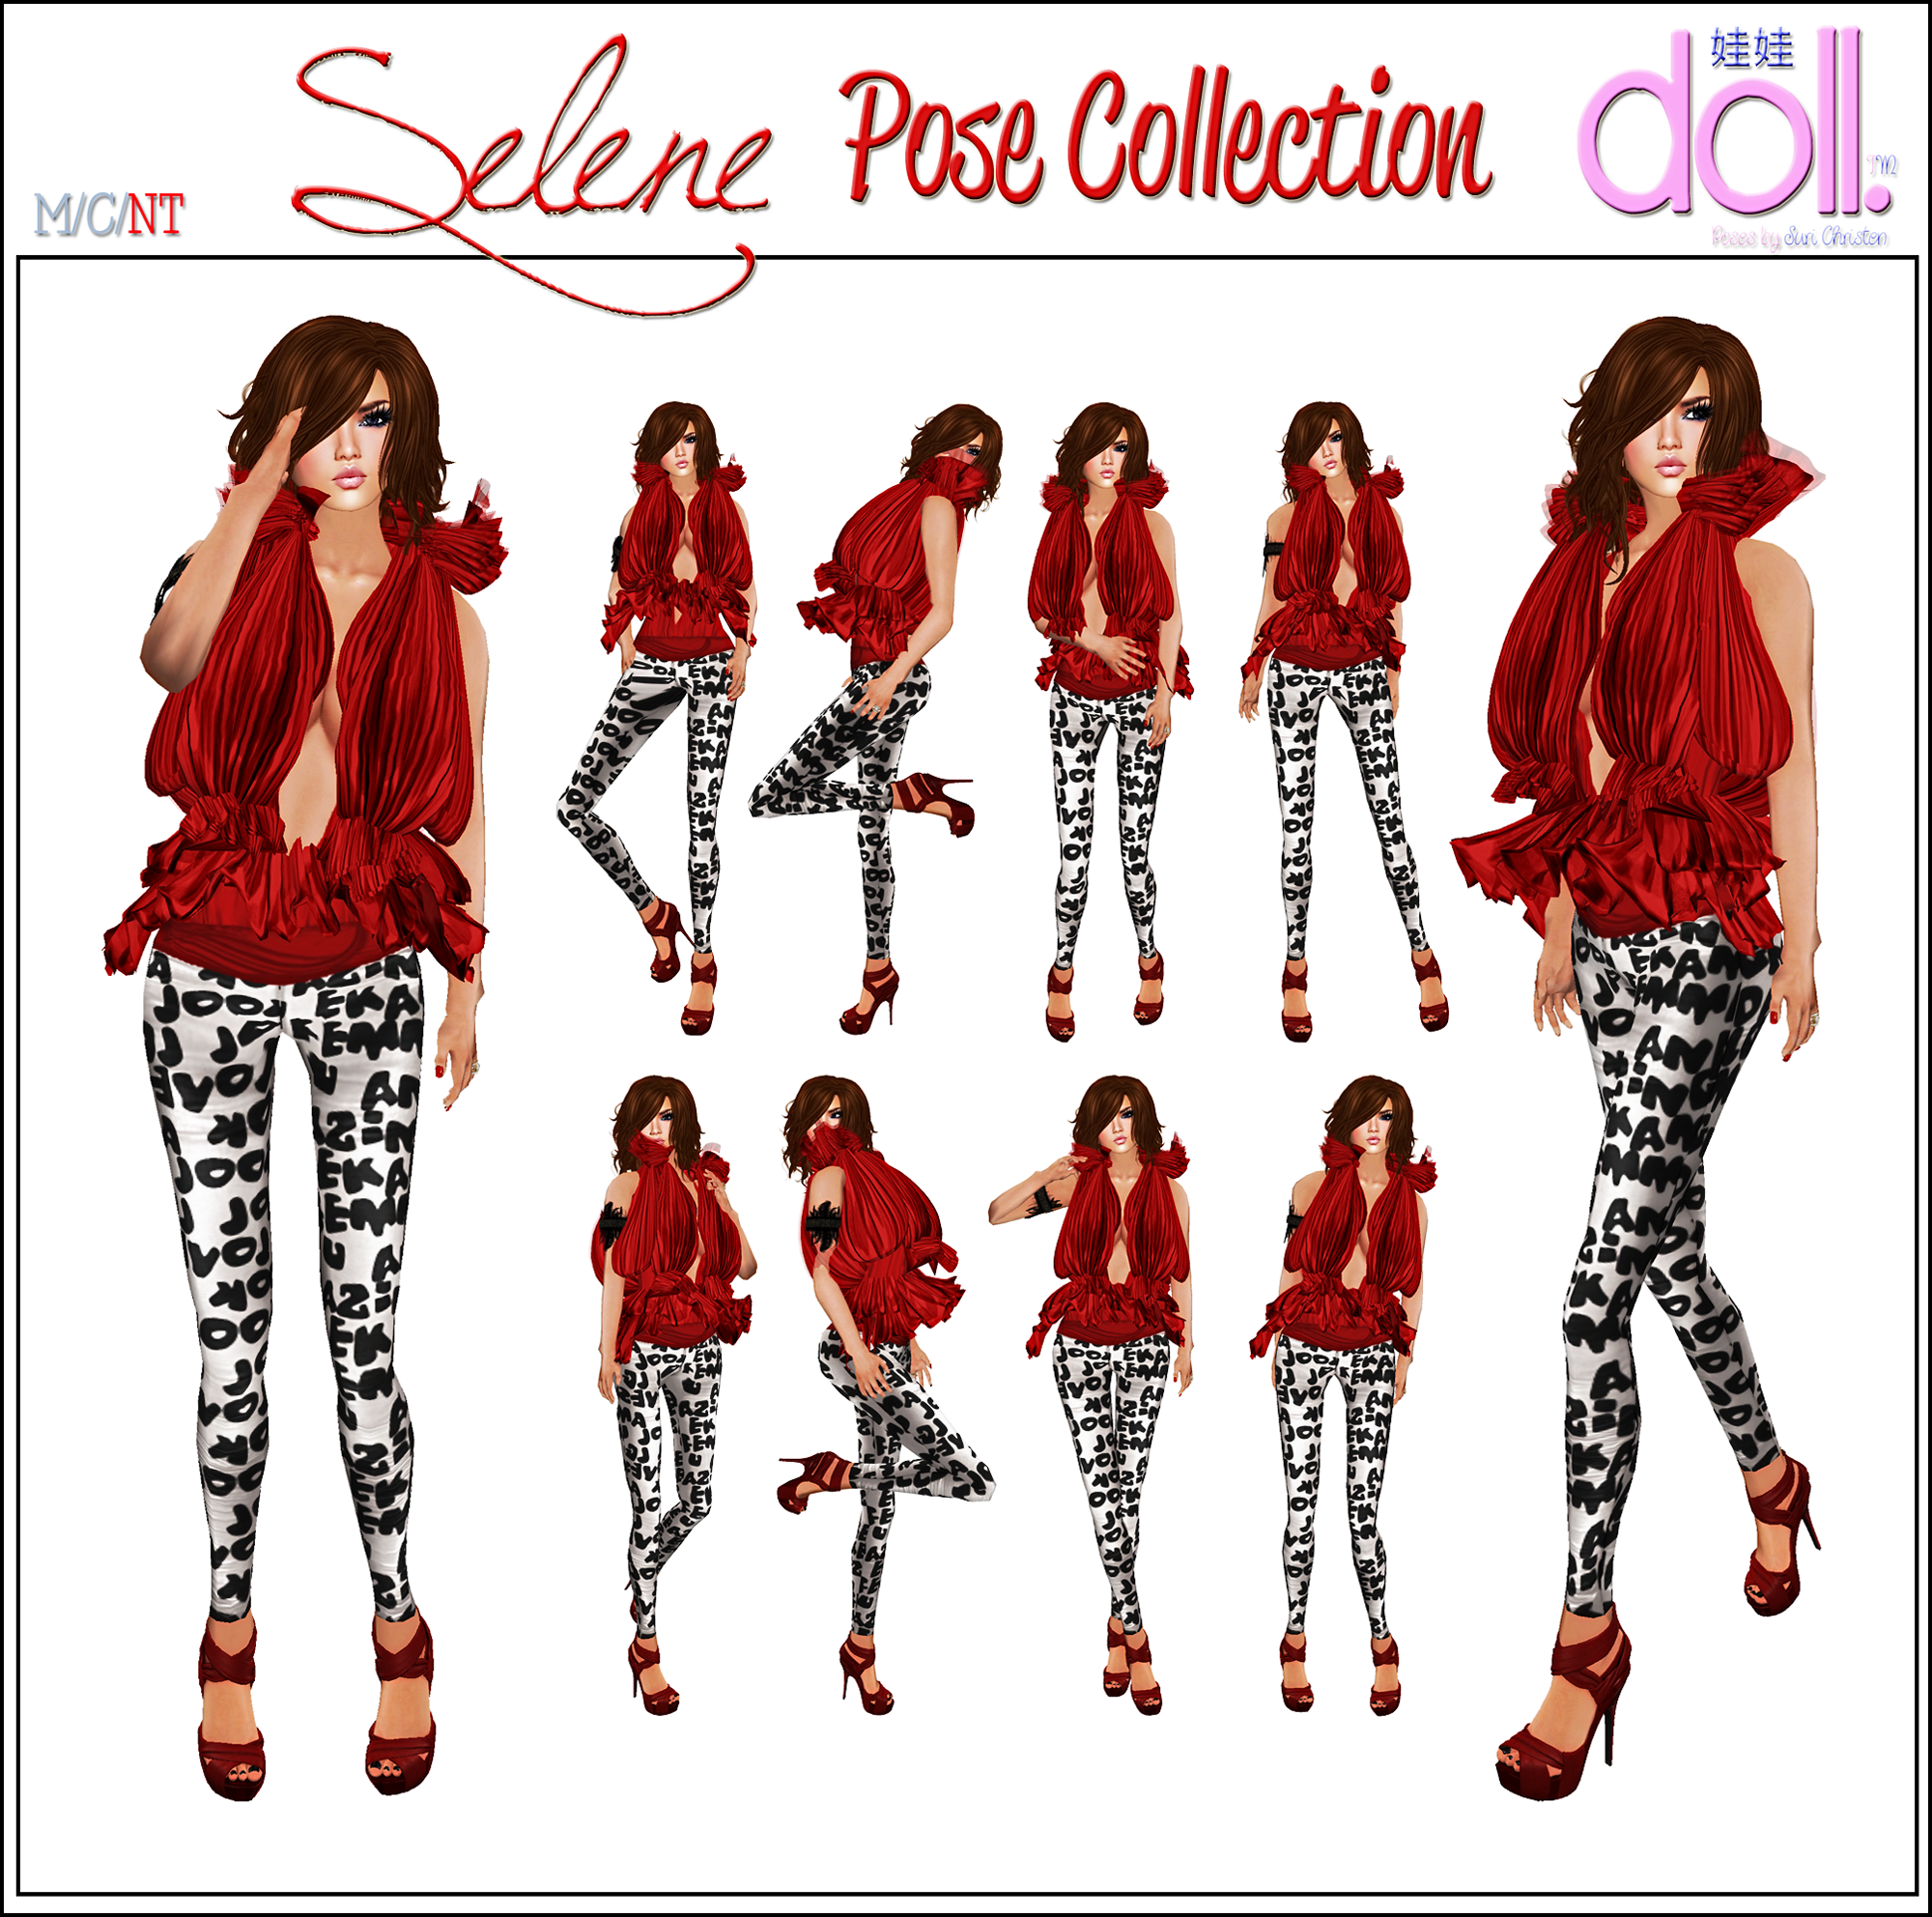 [doll.]™ Selene Pose Collection